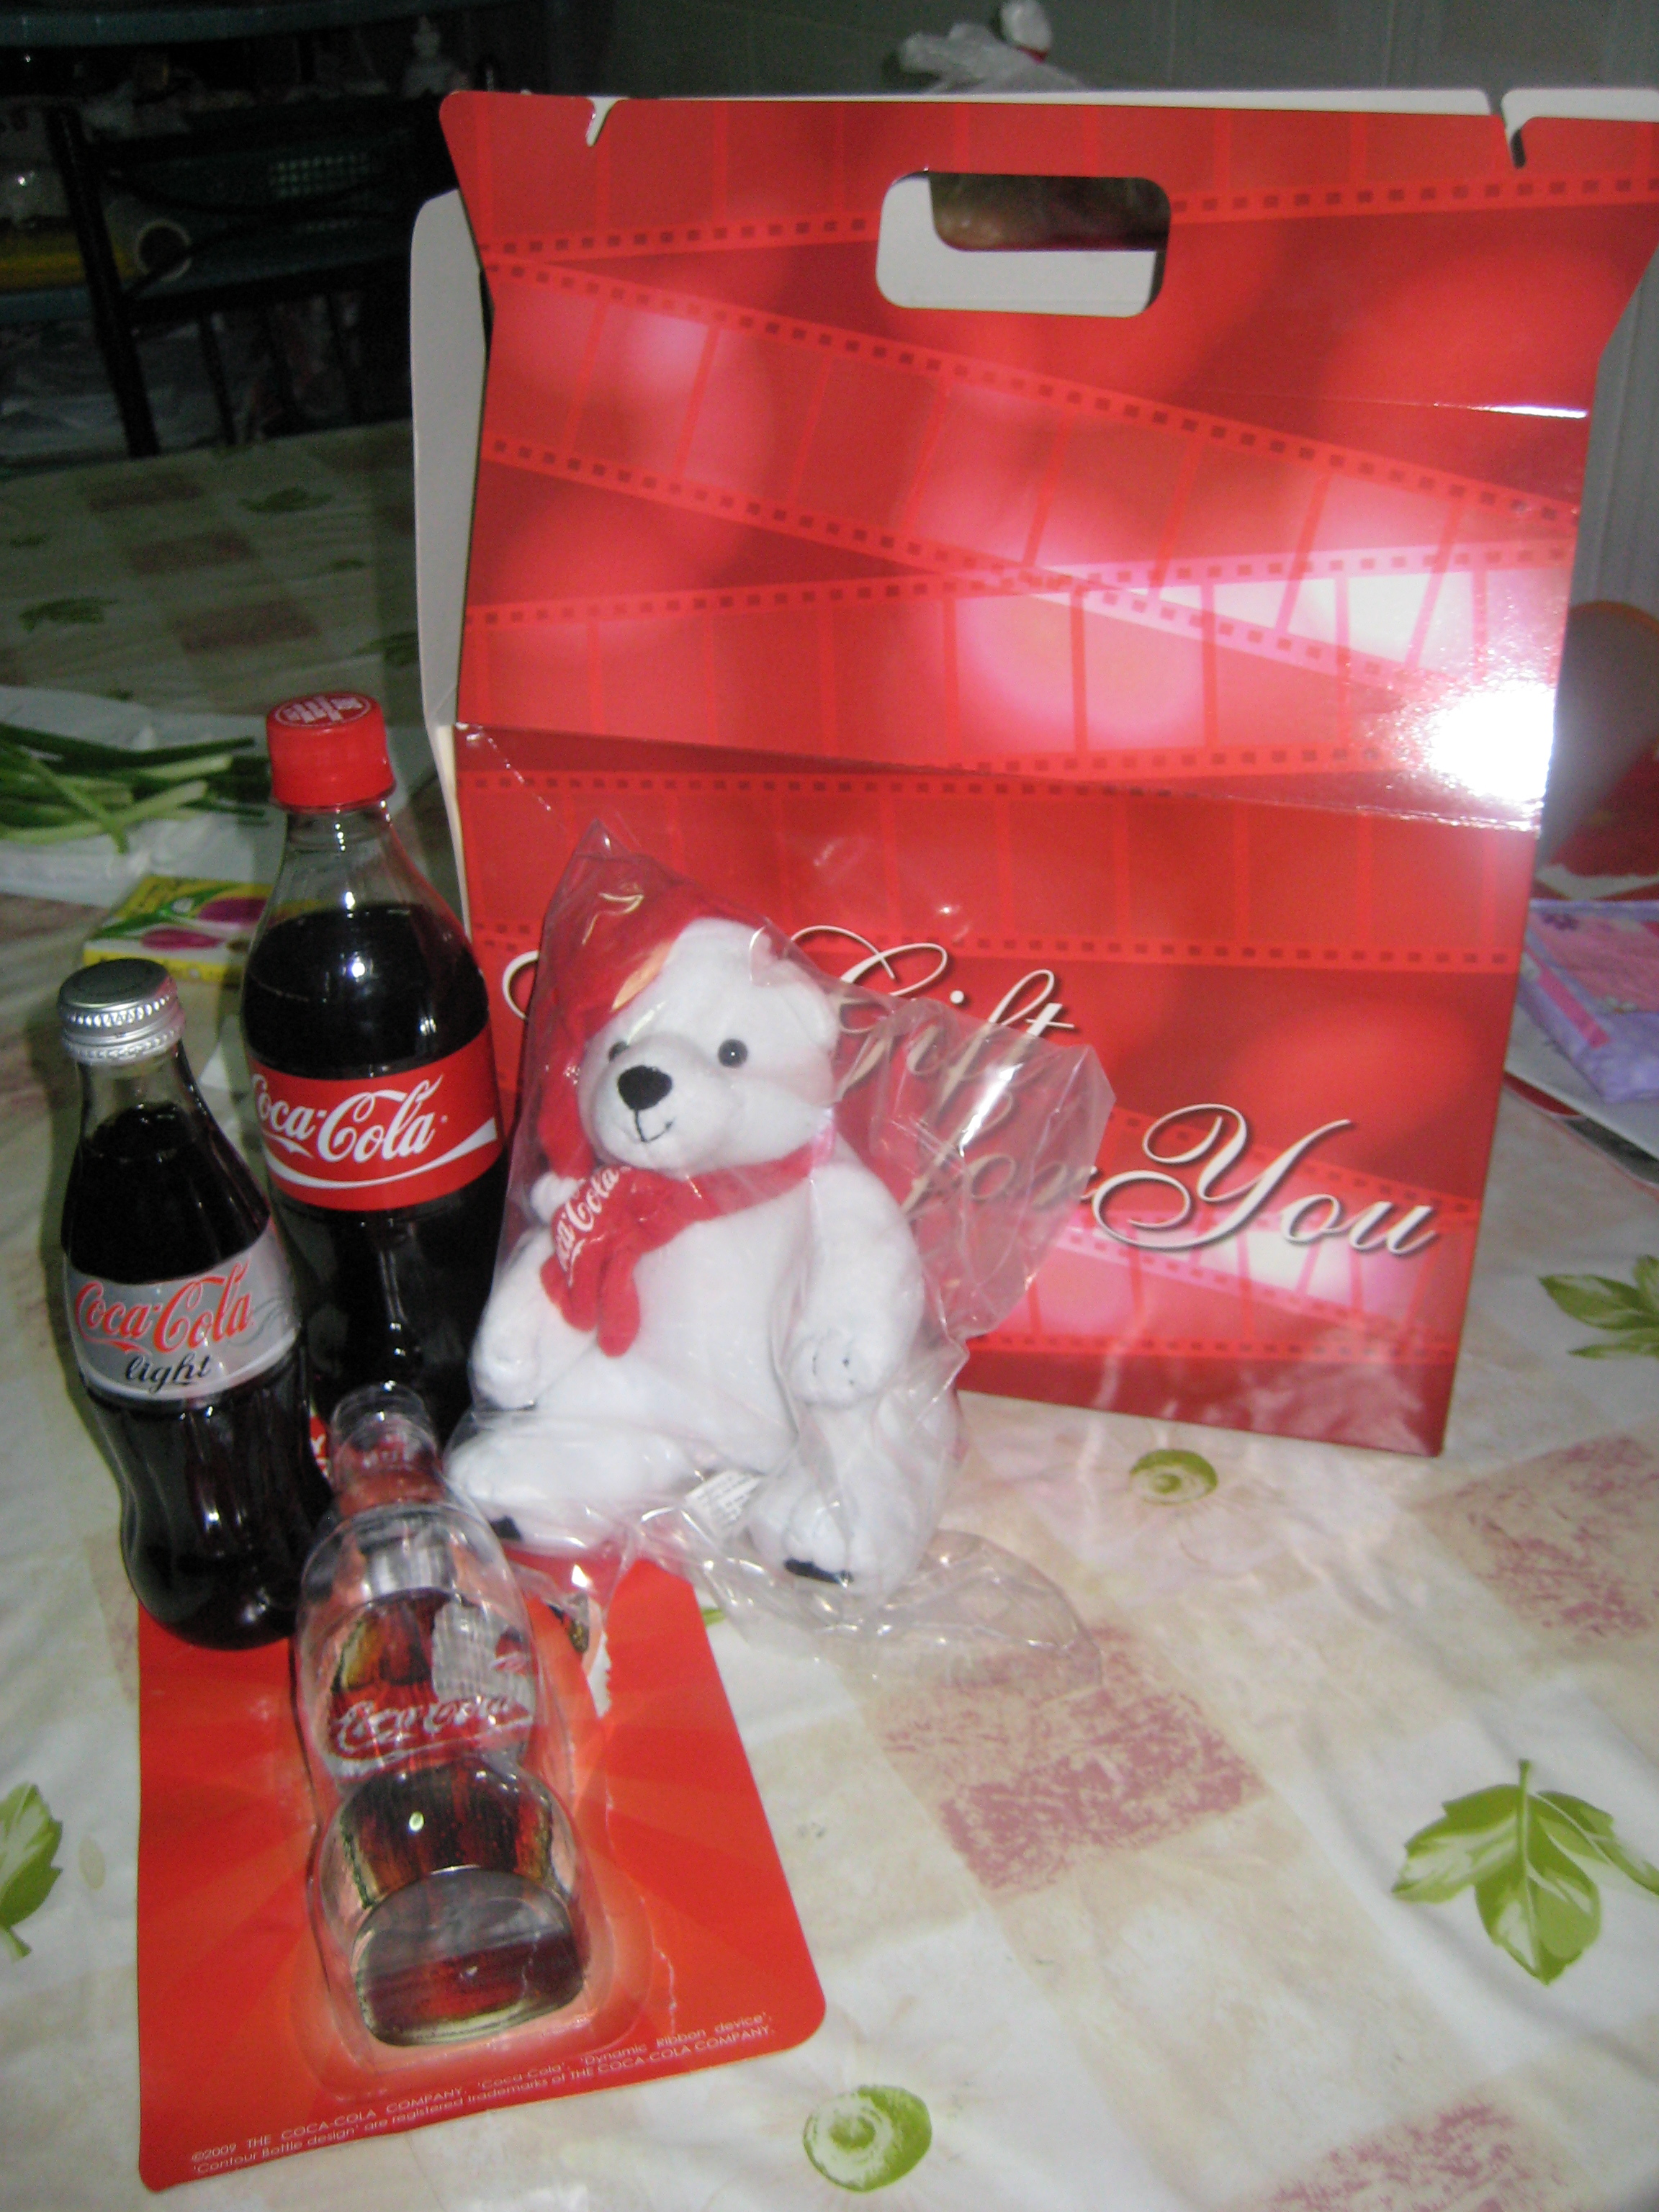 Free Goodie Bag with soft toy teddy, coke glass bottles, vouchers and more!